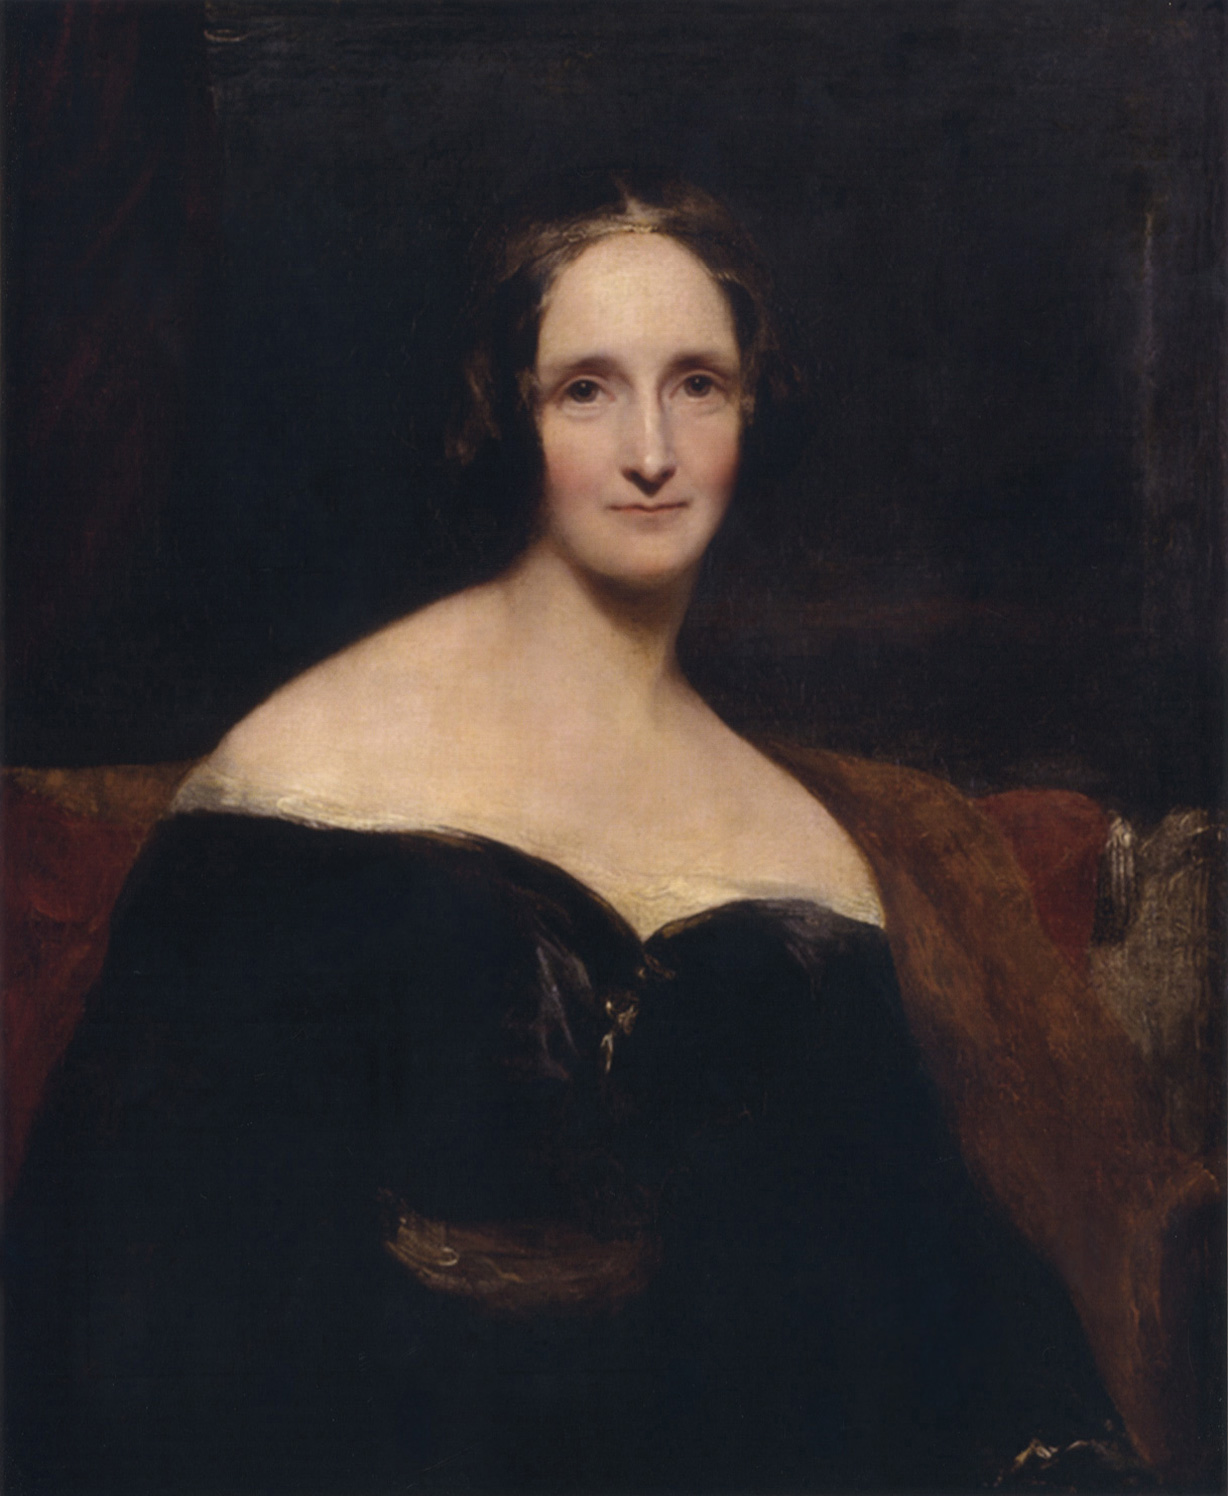 https://upload.wikimedia.org/wikipedia/commons/6/65/RothwellMaryShelley.jpg